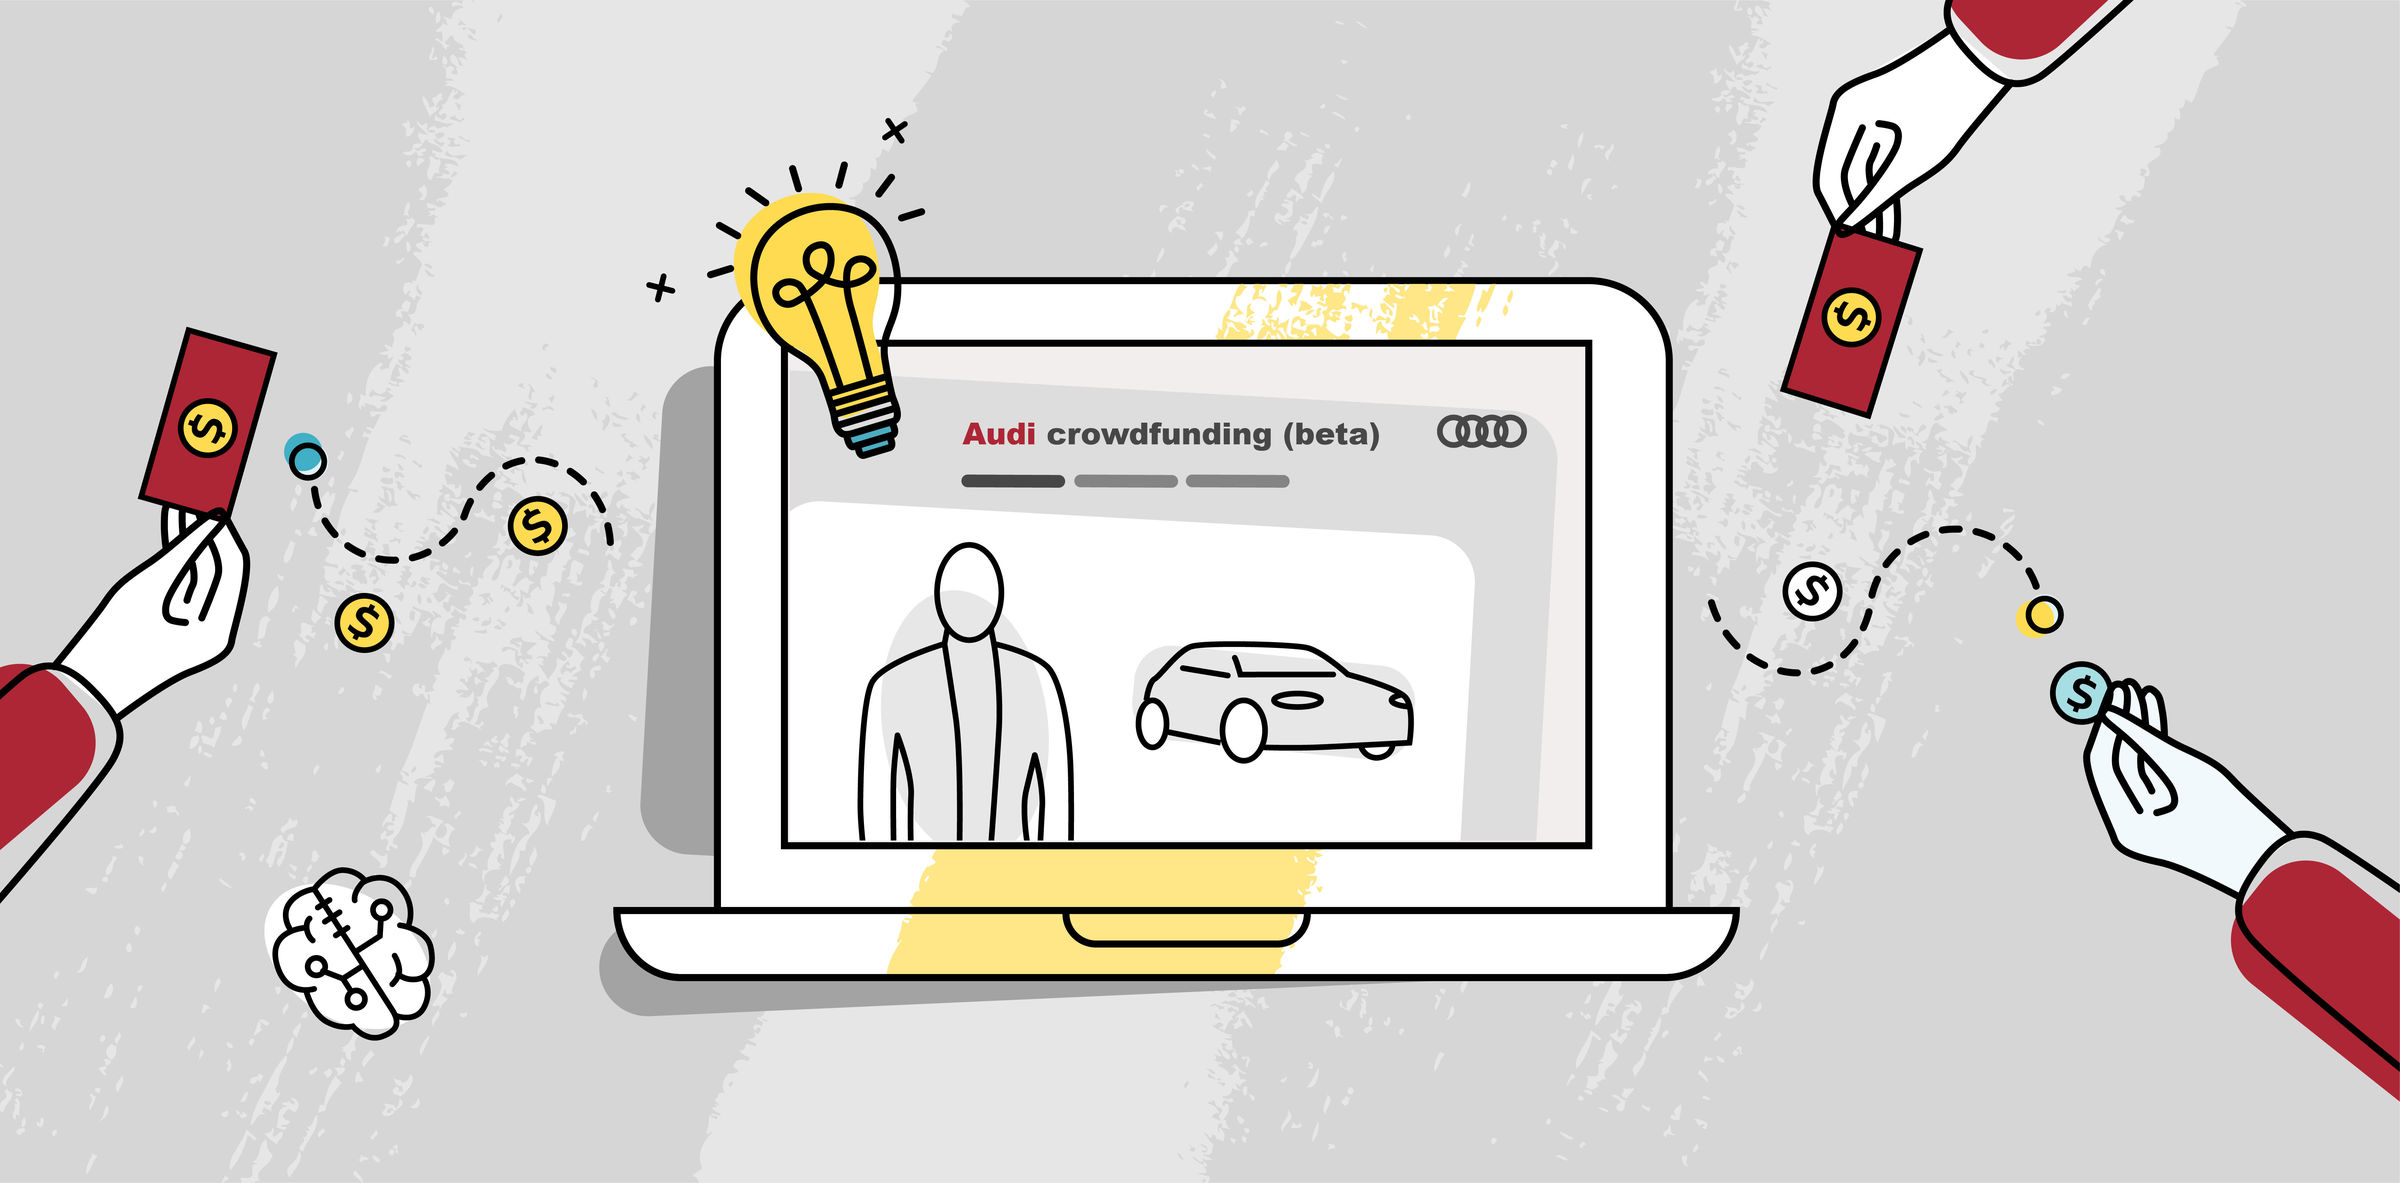 Crowdfunding accomplishes innovative projects at Audi